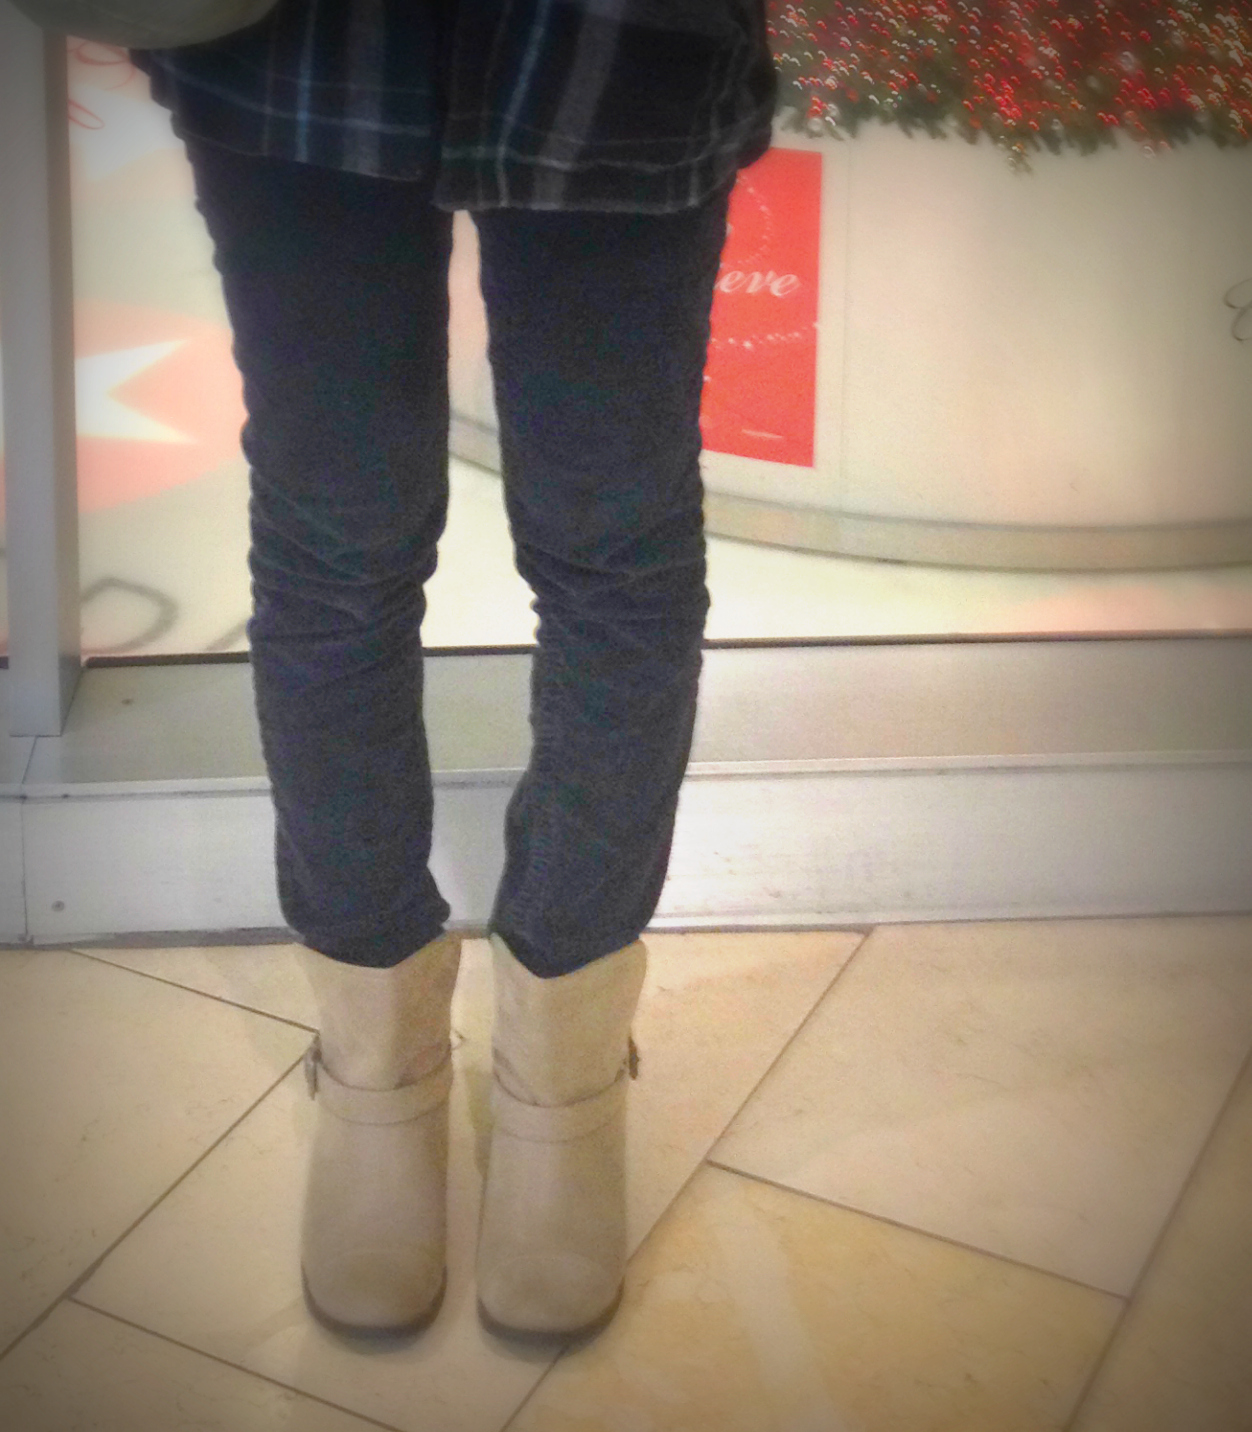 Mall outfit shoes